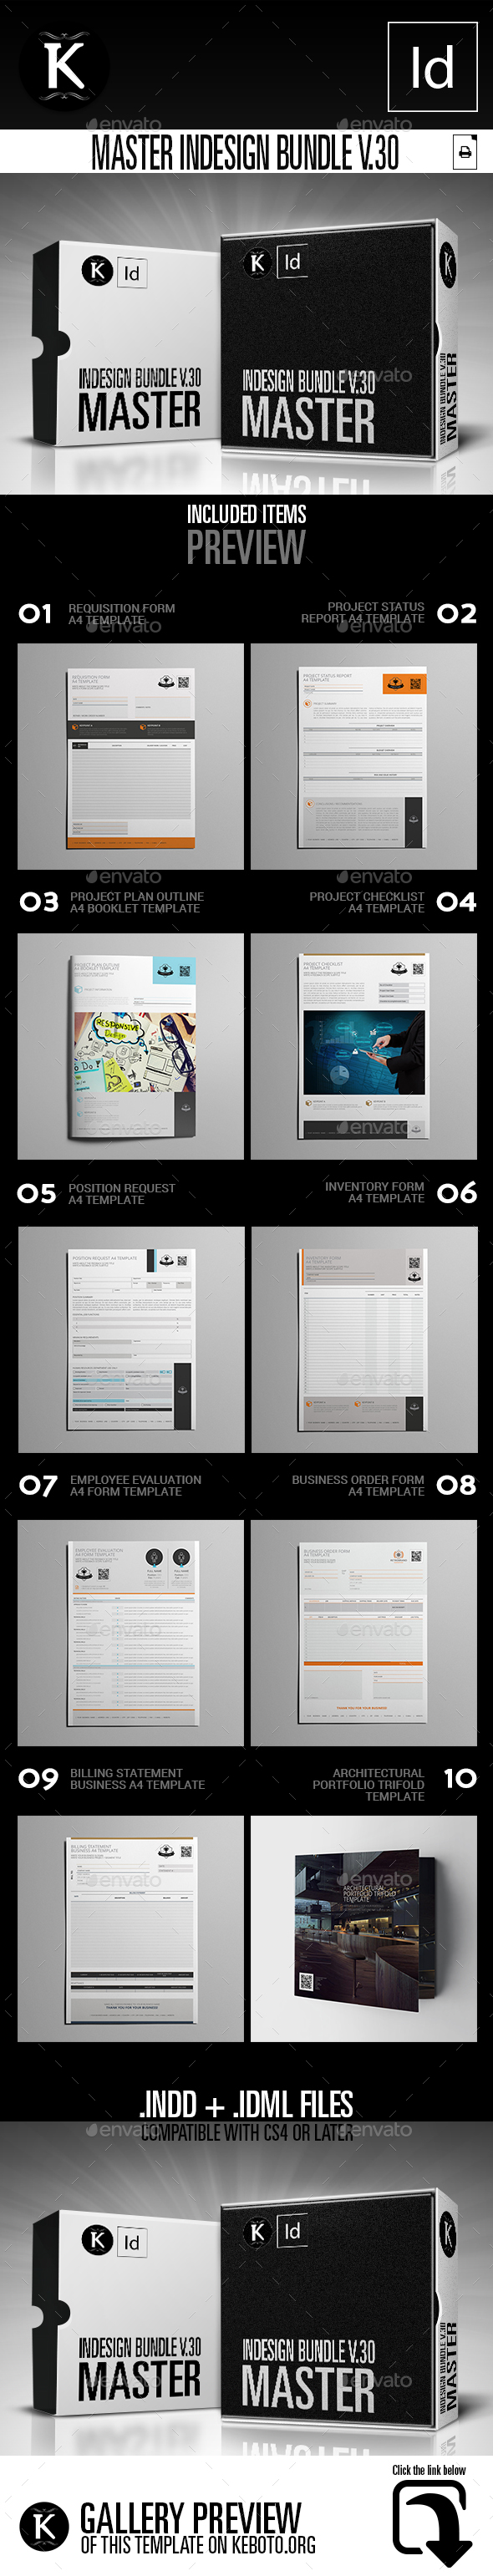 GraphicRiver Master inDesign Bundle v.30 21071089